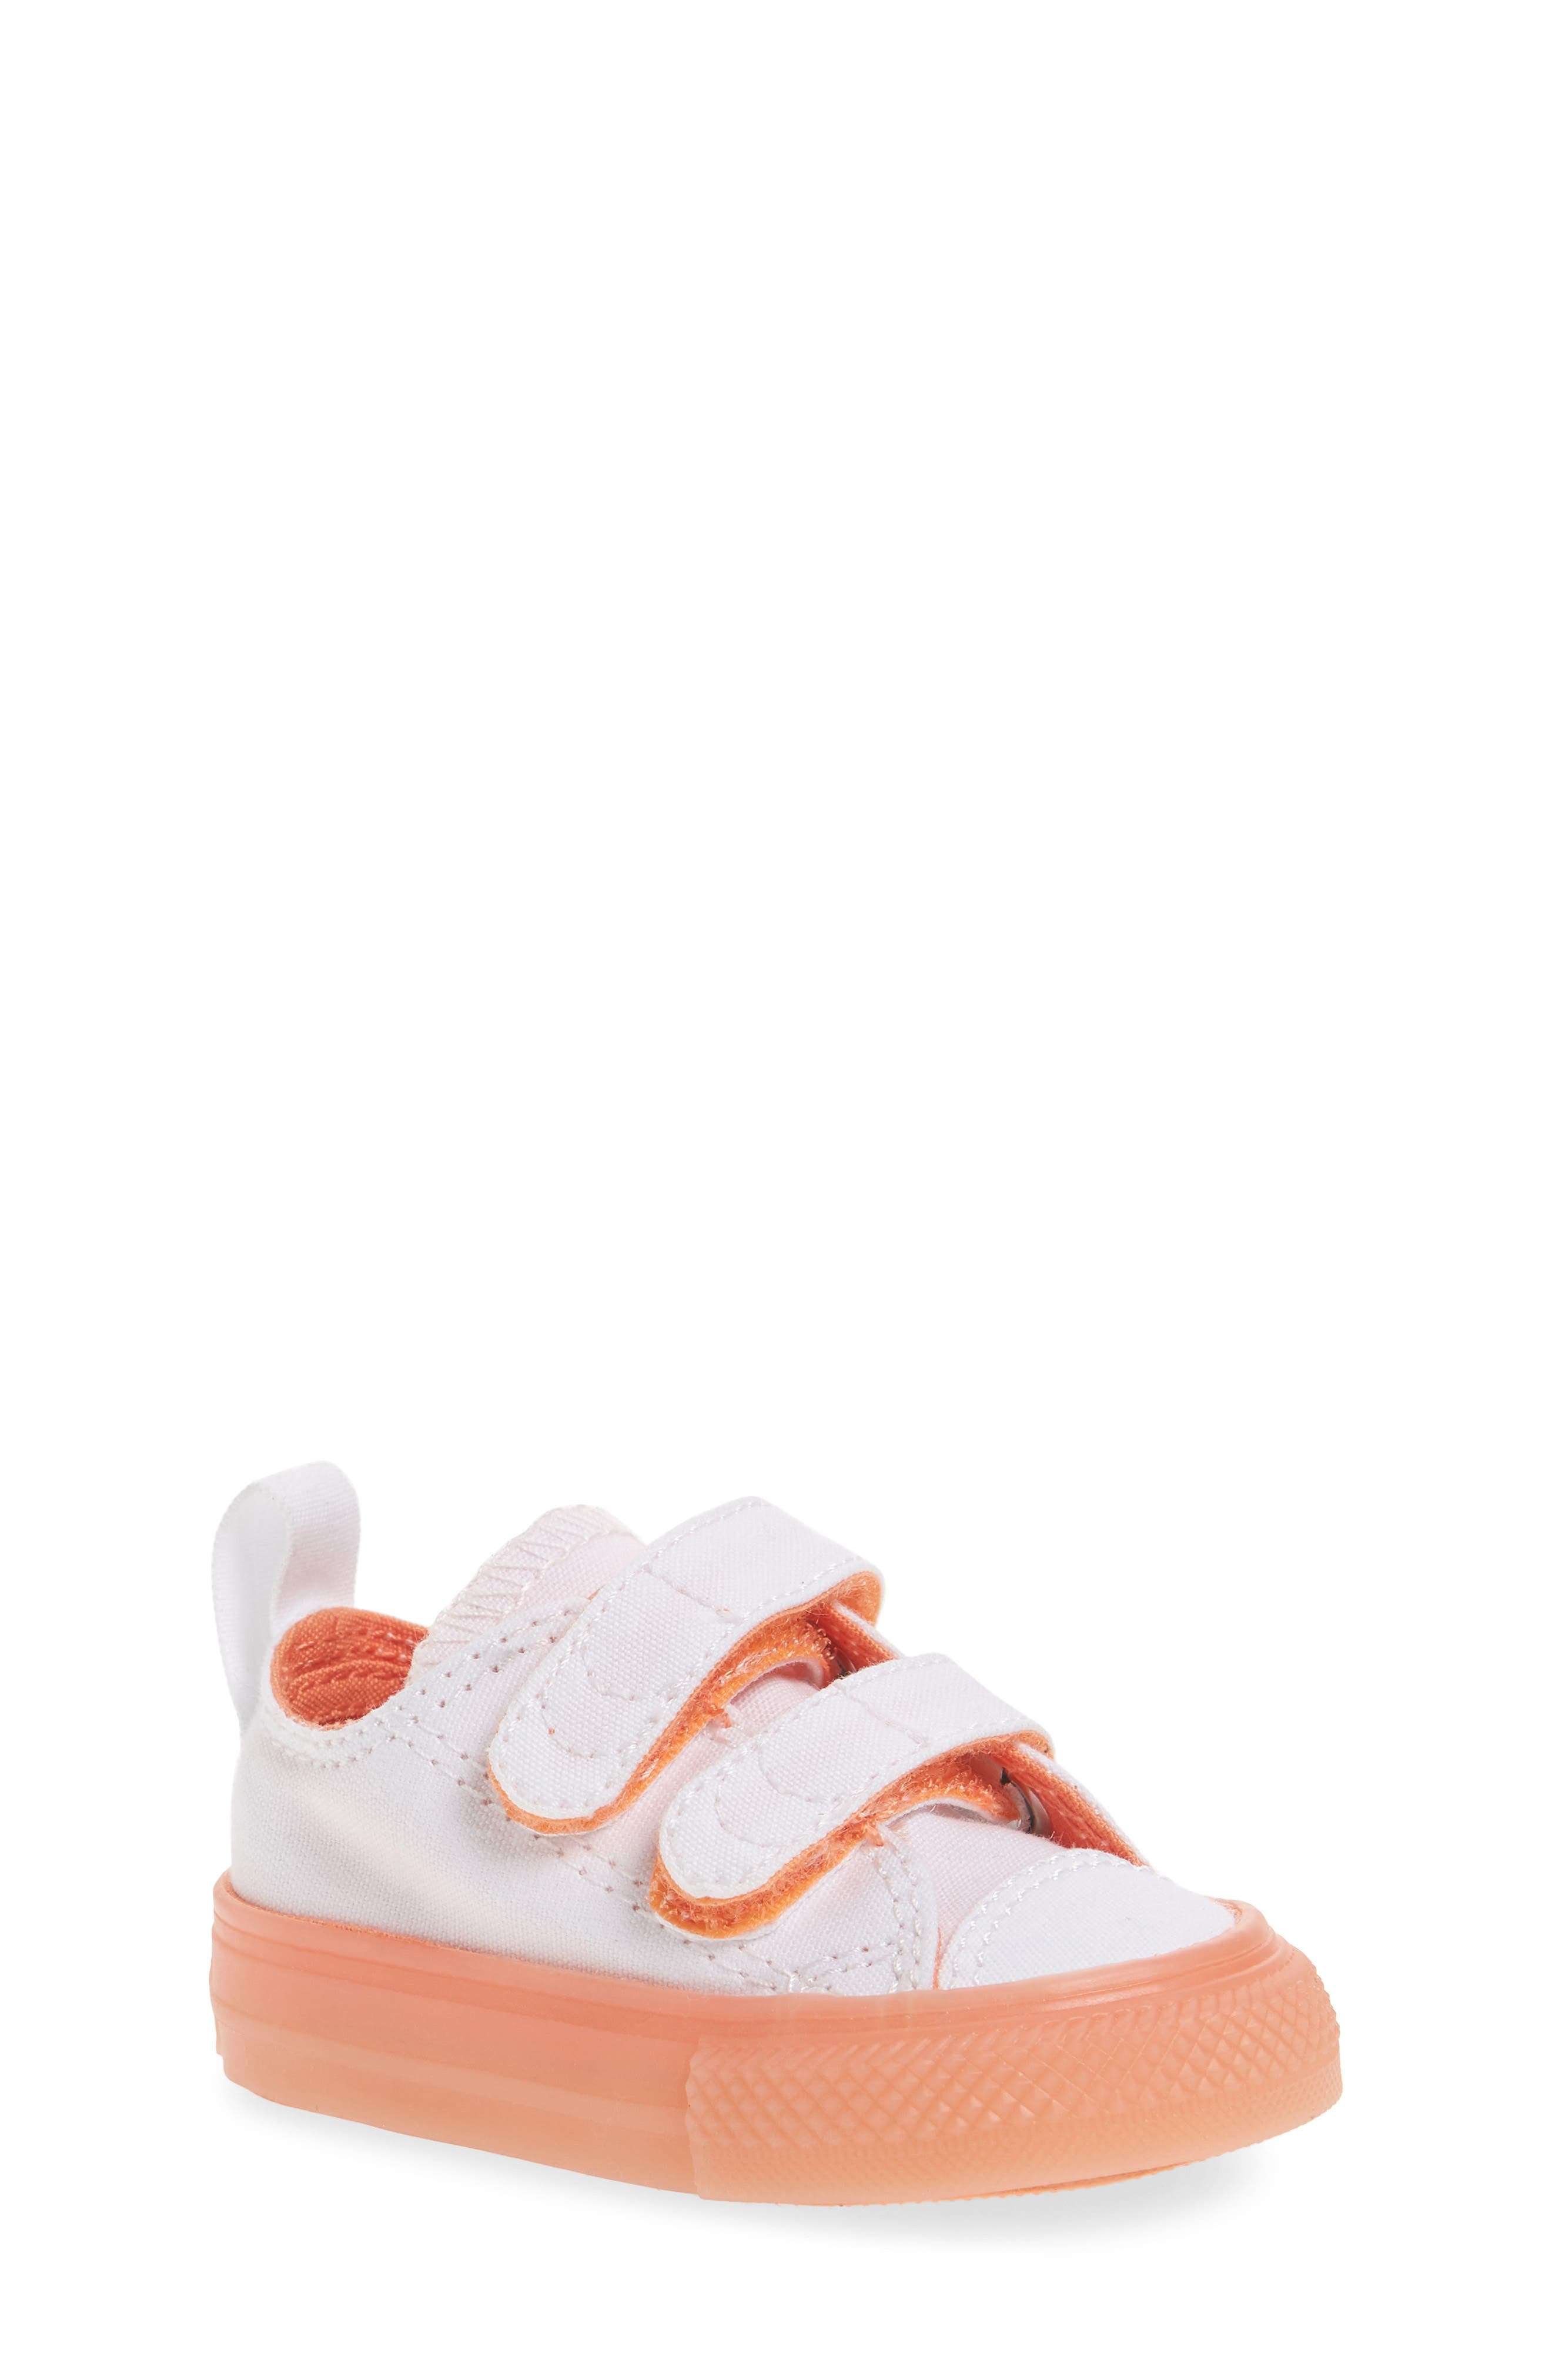 Chuck Taylor<sup>®</sup> All Star<sup>®</sup> Jelly Sneaker,                             Main thumbnail 1, color,                             Orange